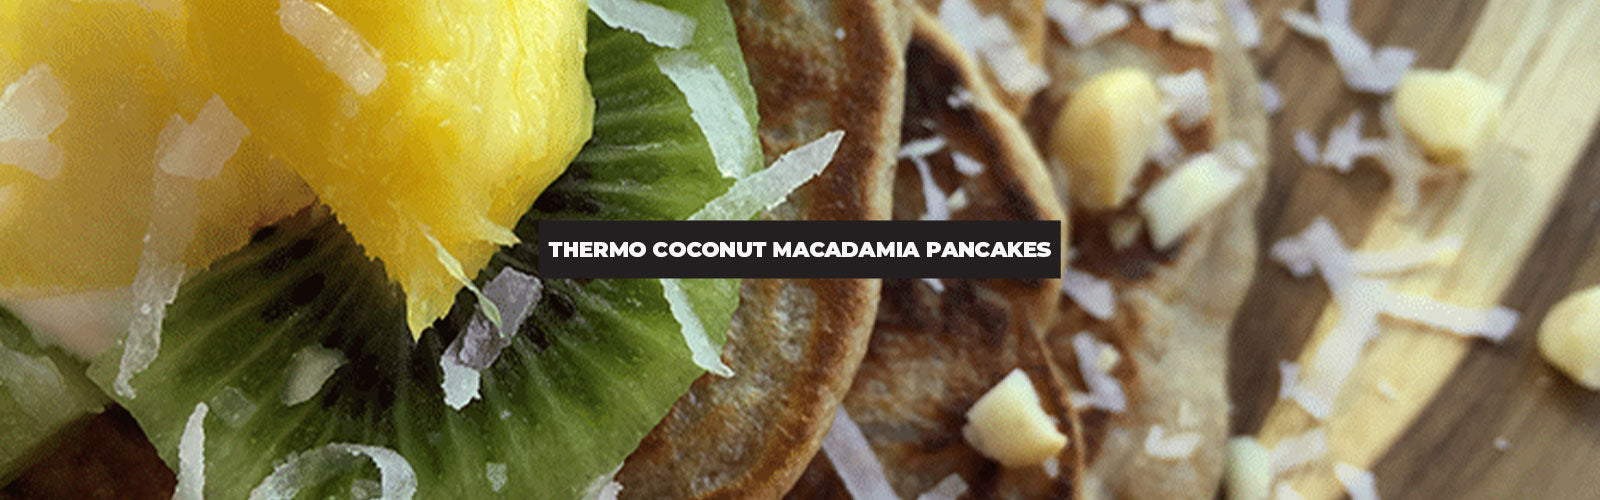 Tropical Thermo Coconut Macadamia Pancakes